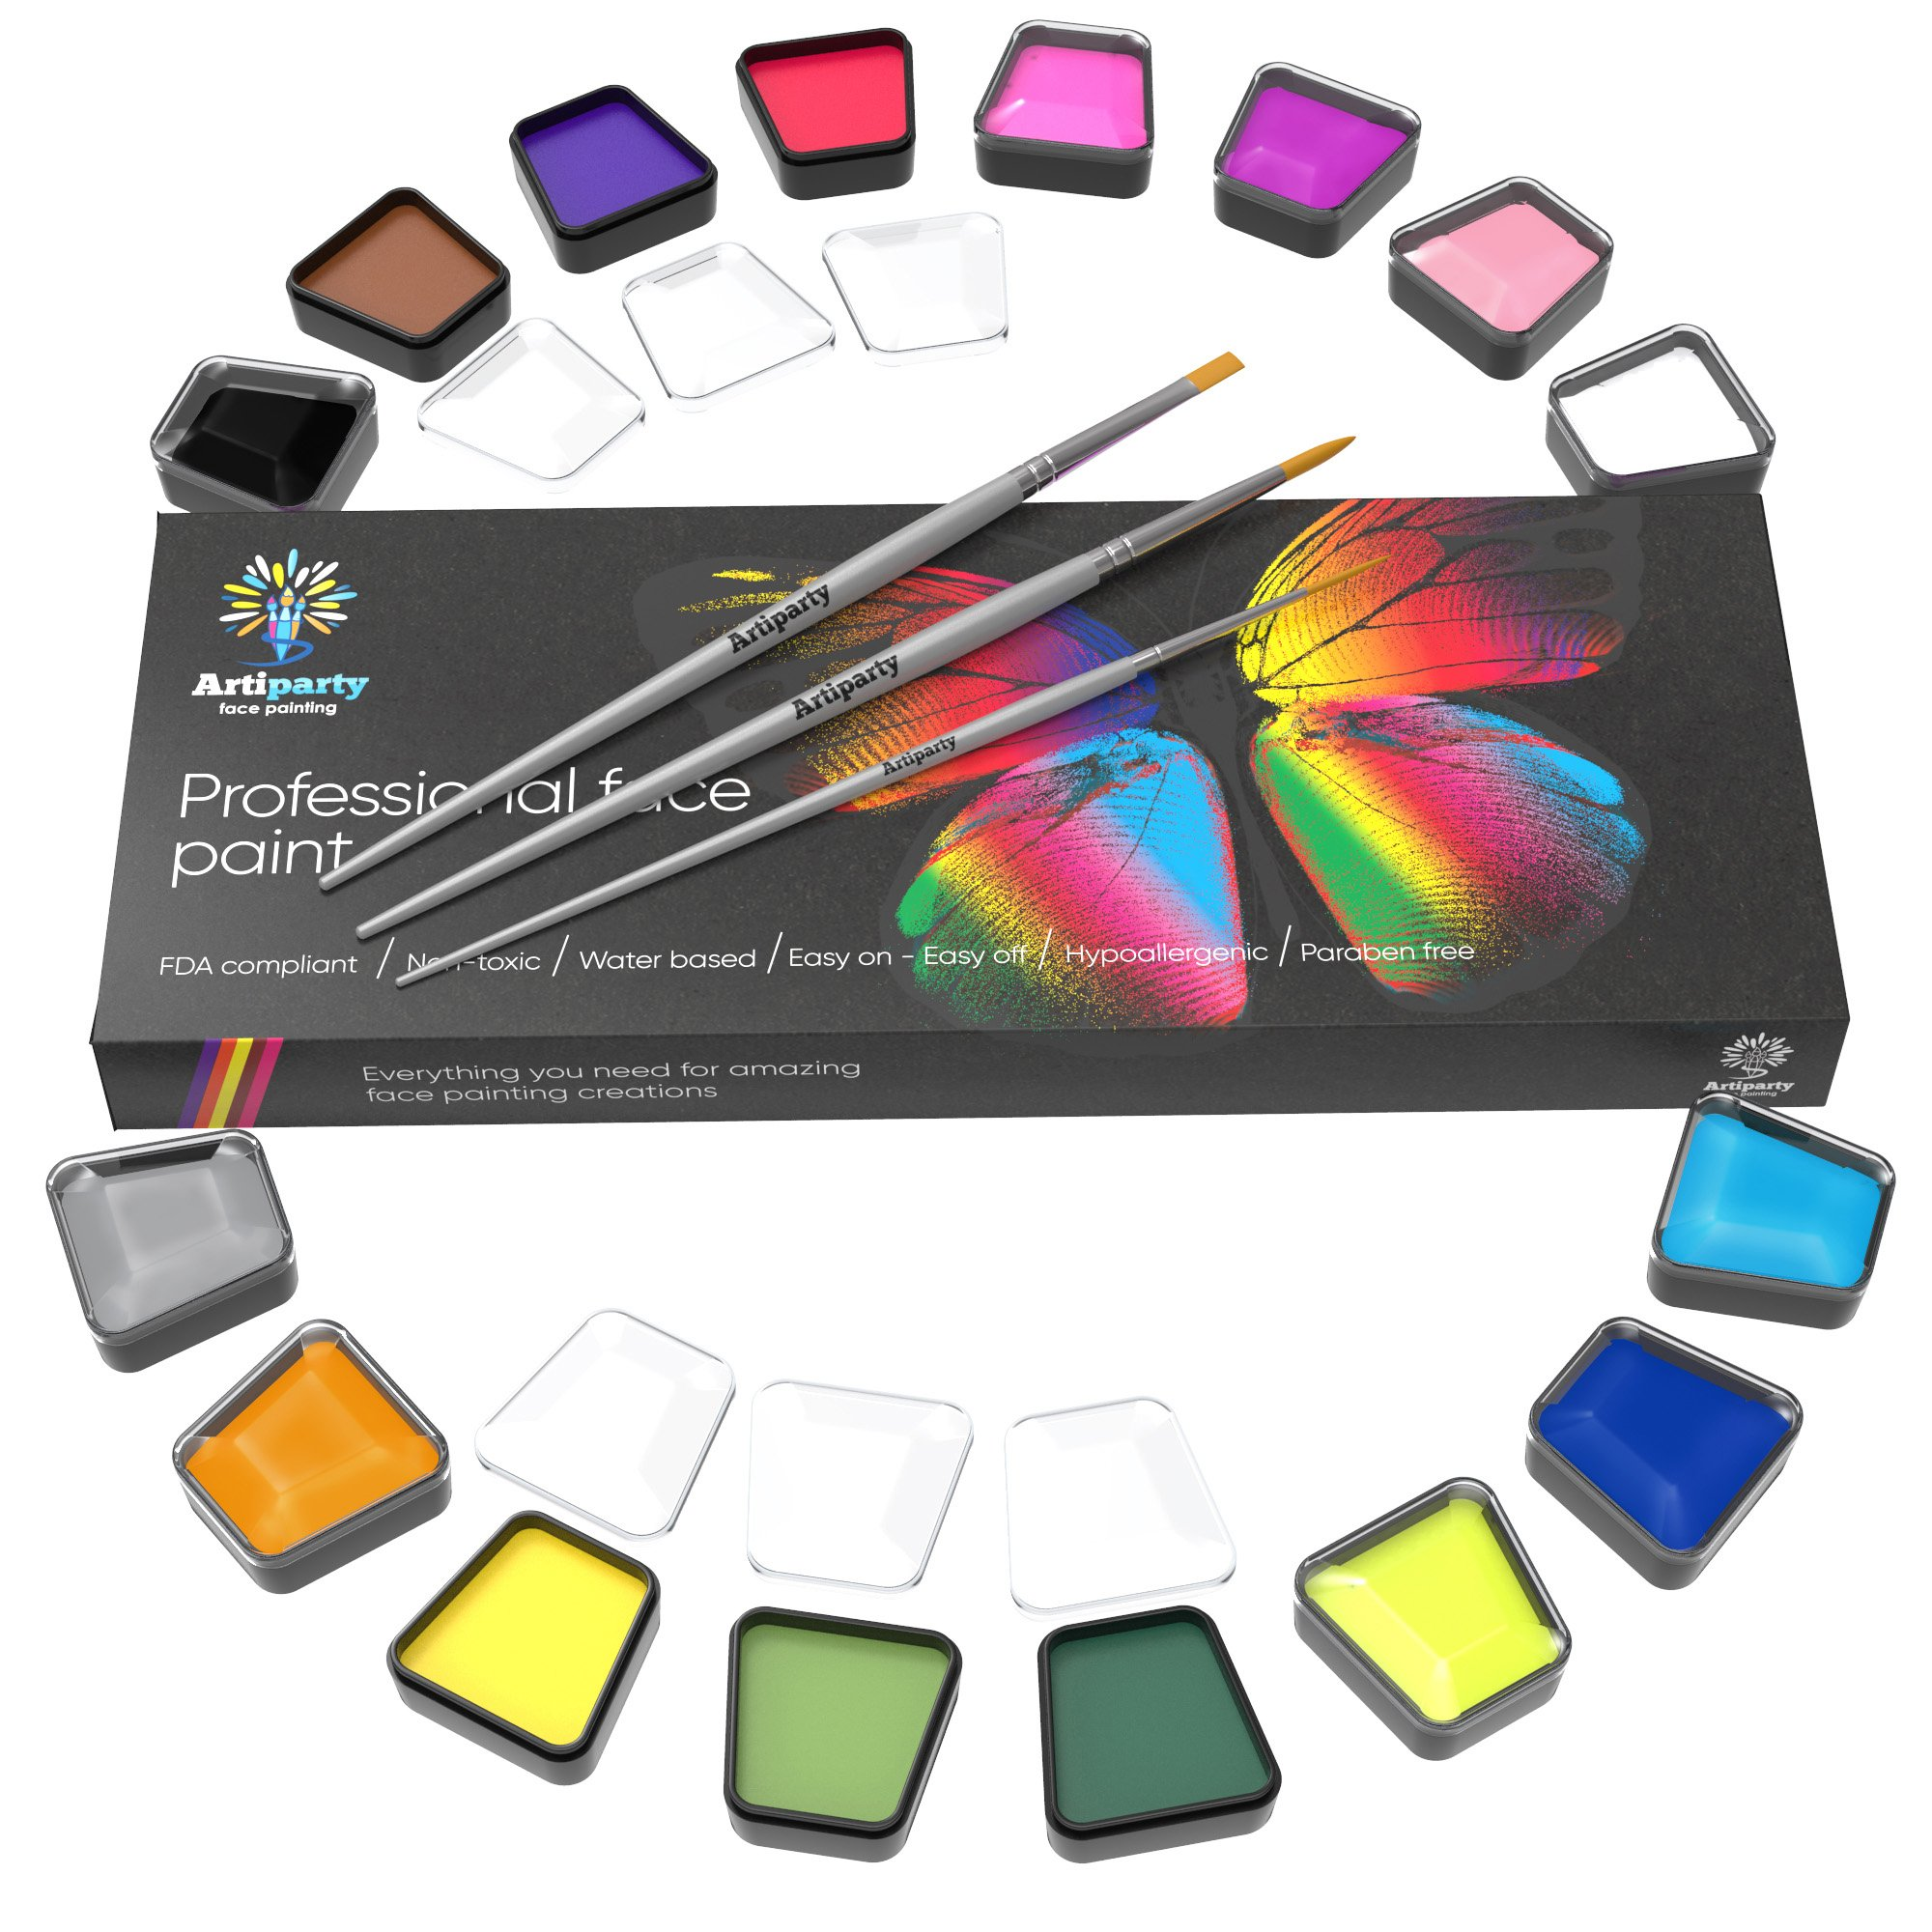 Face Paint Set – Make Up Paint – Premium Adults & Kids Face Painting Kit – Paints More Than 120 Faces – Non-Toxic & Hypoallergenic – Easy to Apply & Remove